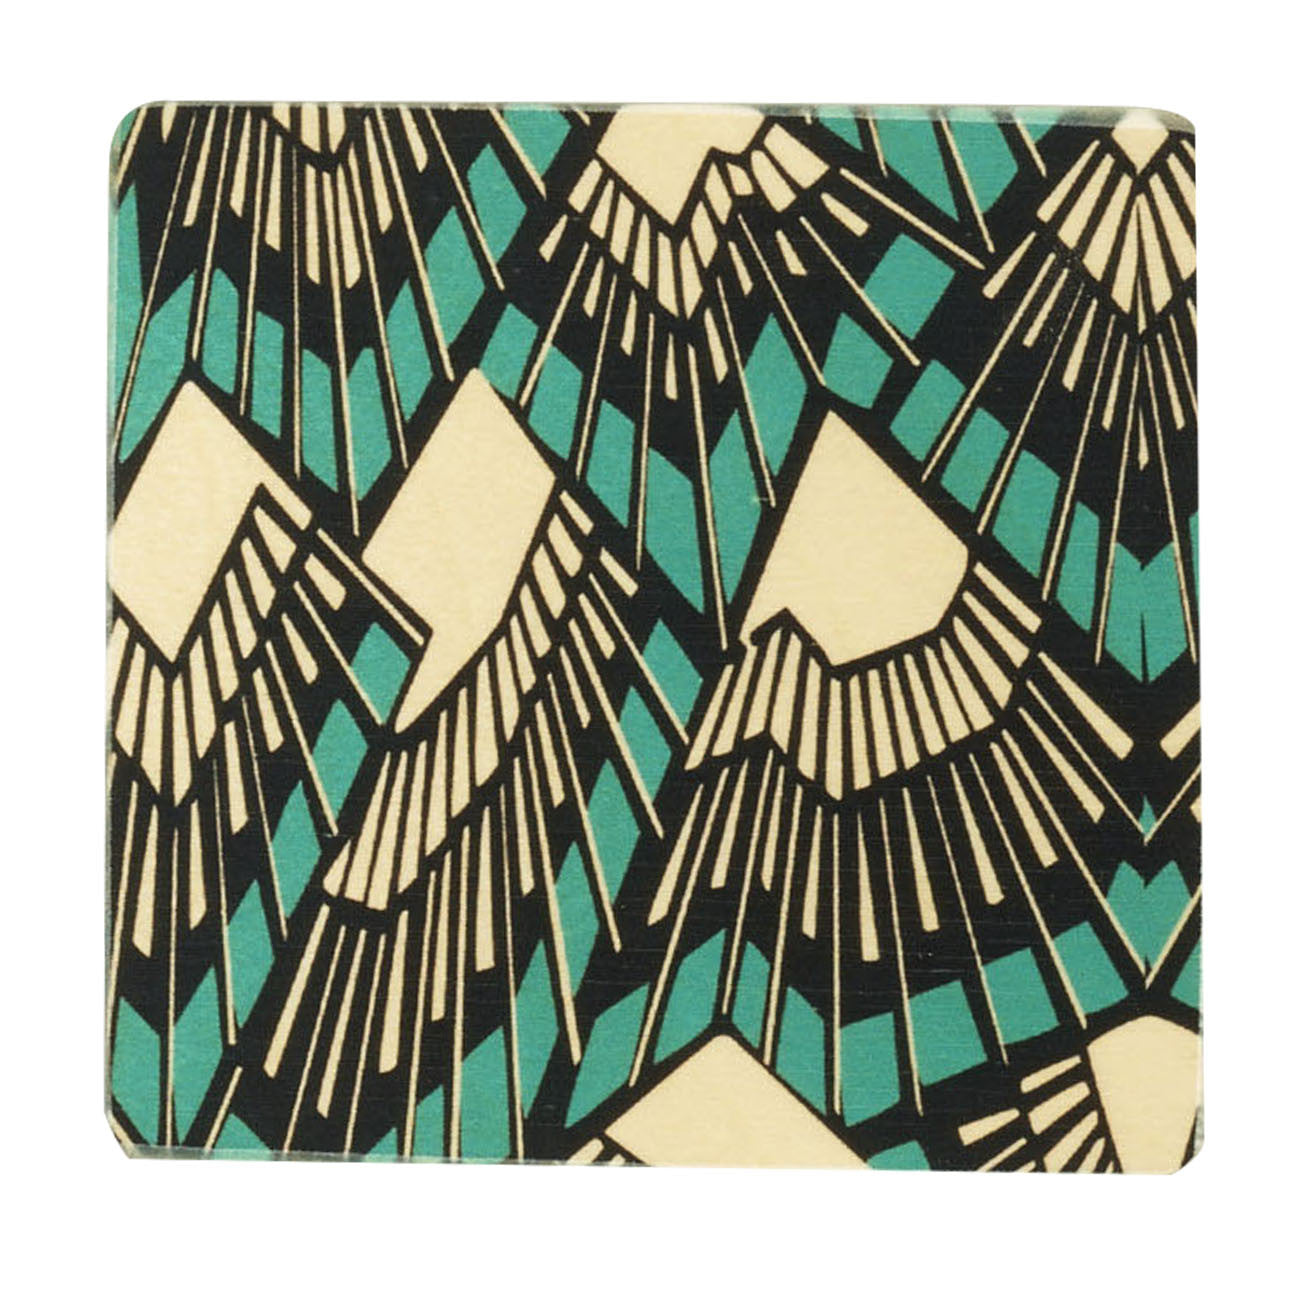 deco teal coasters, set of four